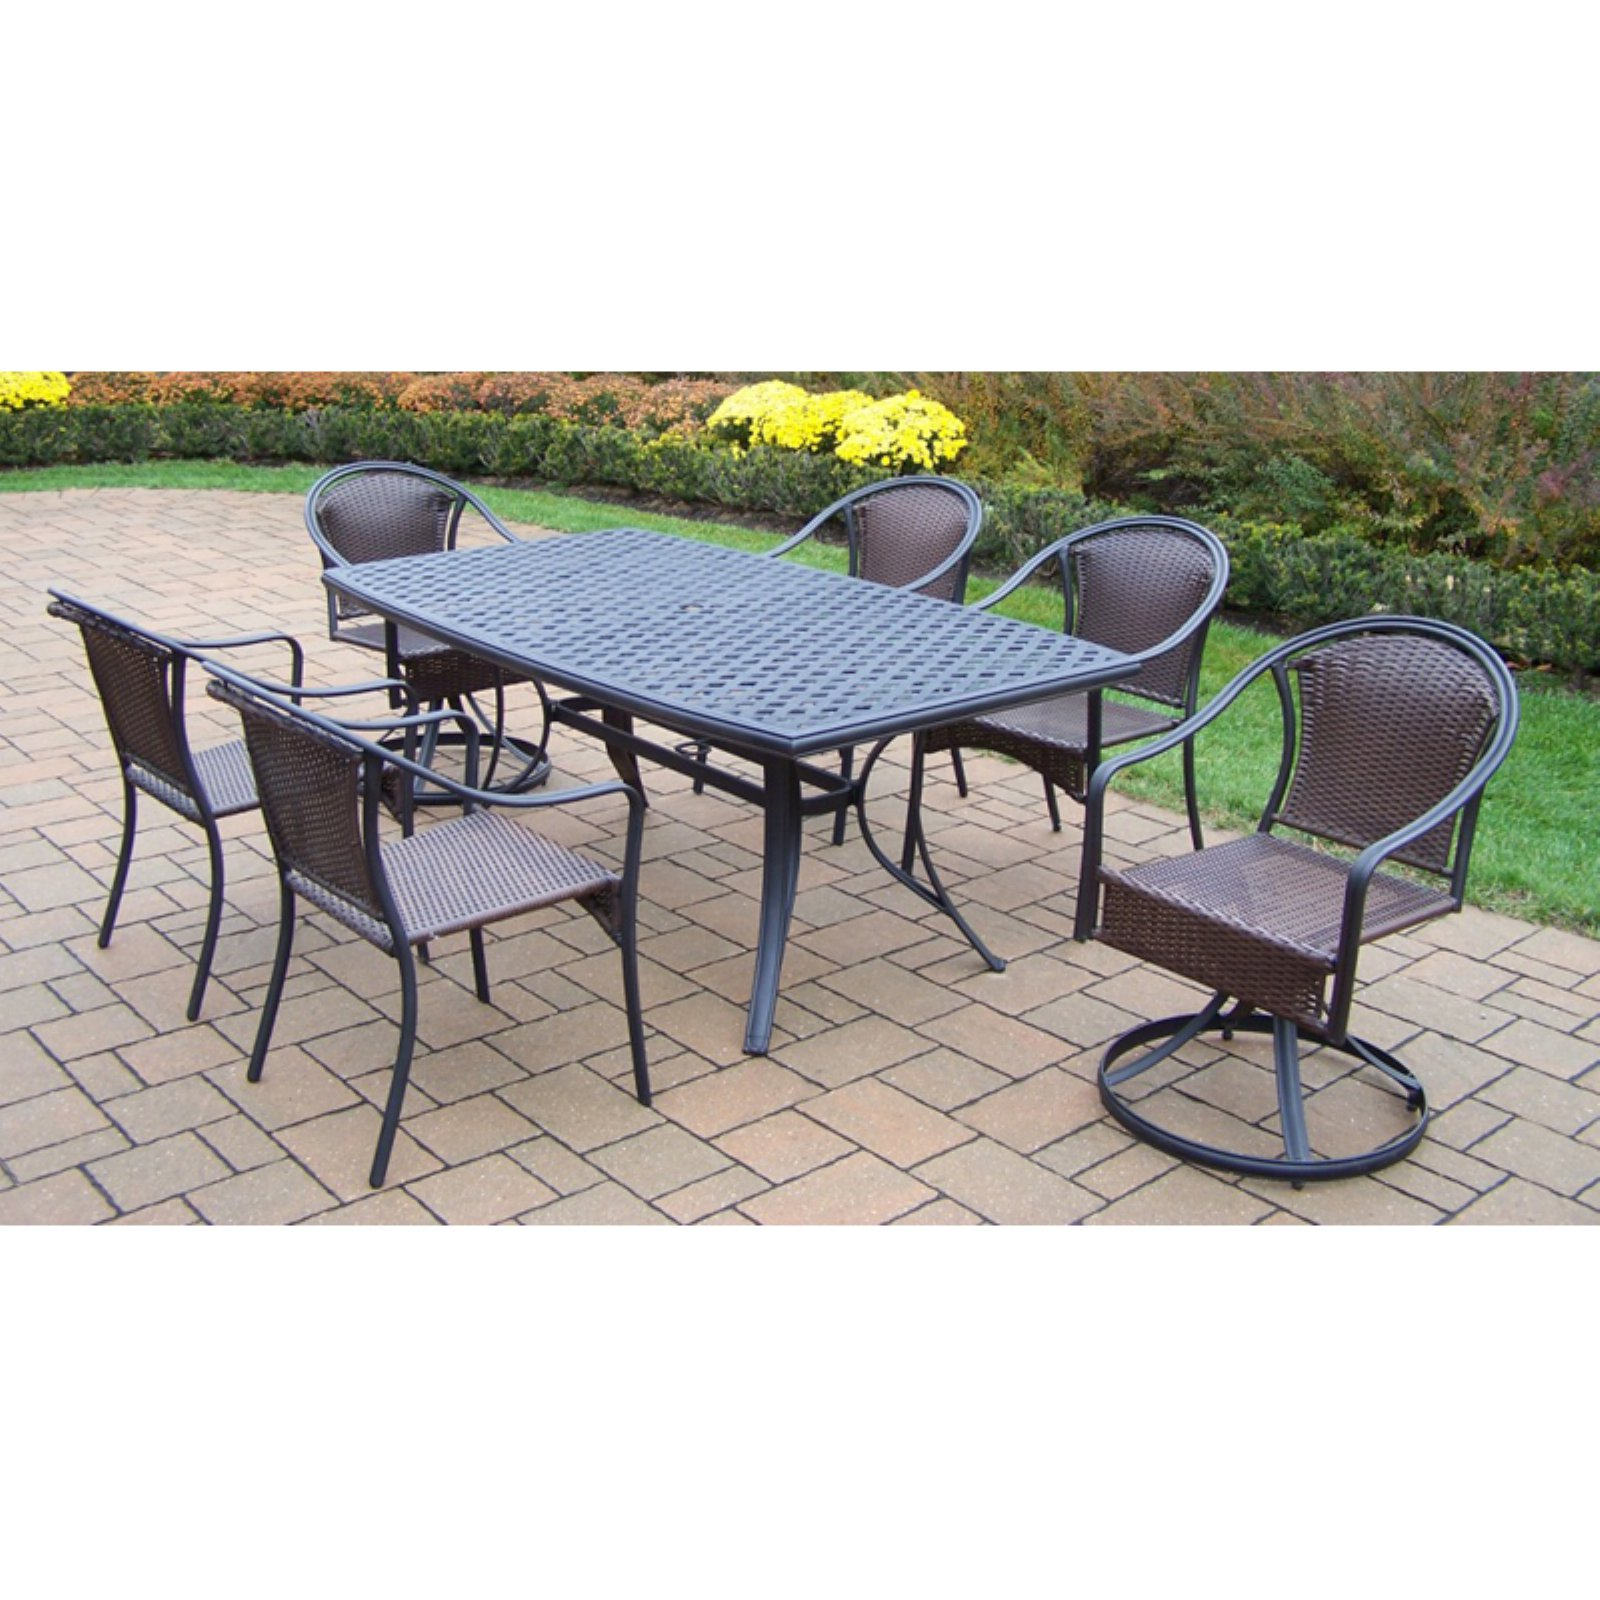 Oakland Living Cascade 7 Piece Patio Dining Room Set with Boat Shape Table by Oakland Living Corp